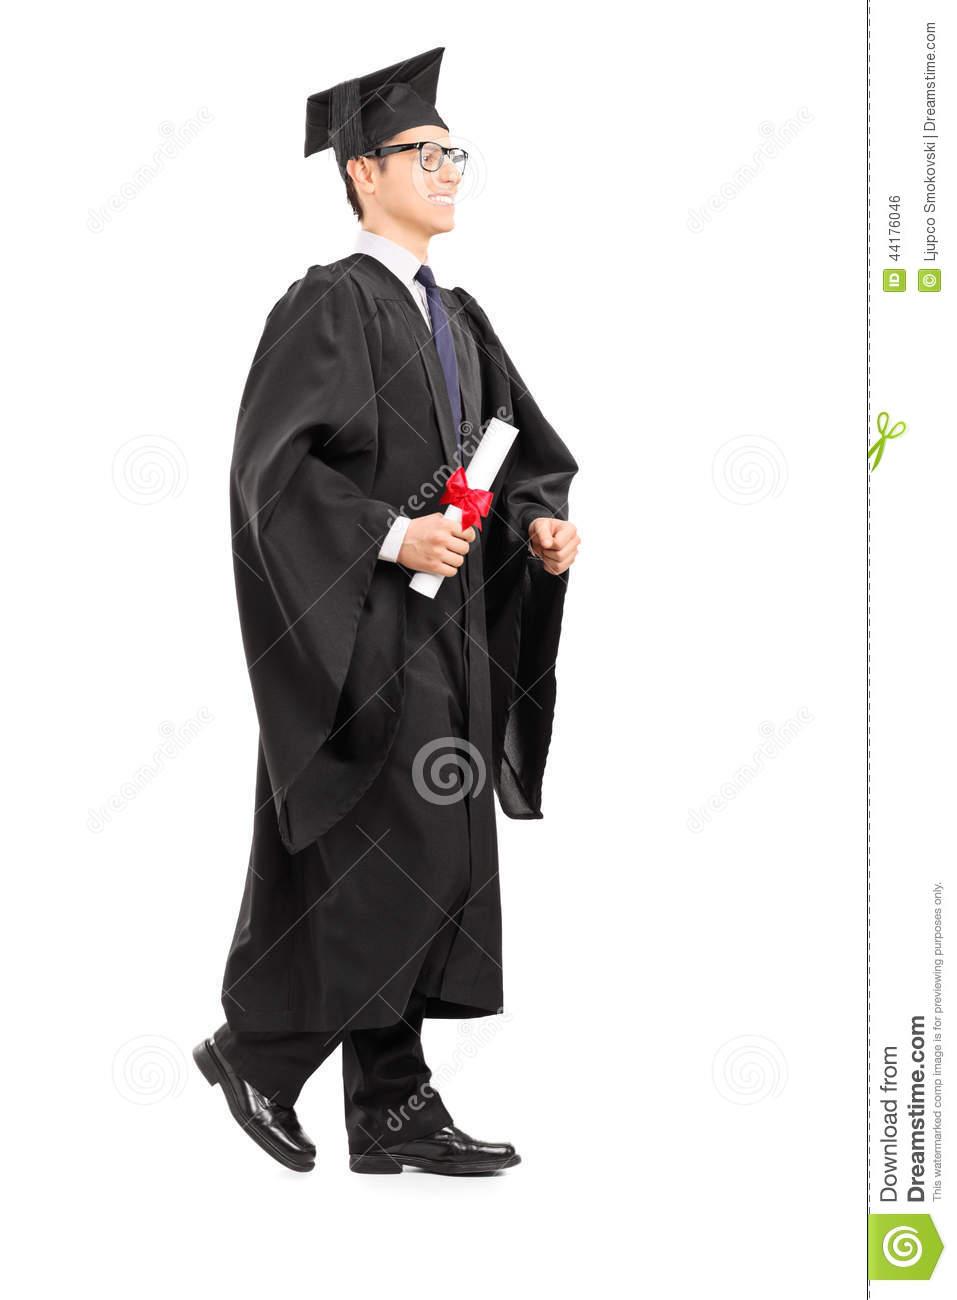 Graduate Student Walking With Diploma In His Hand Stock